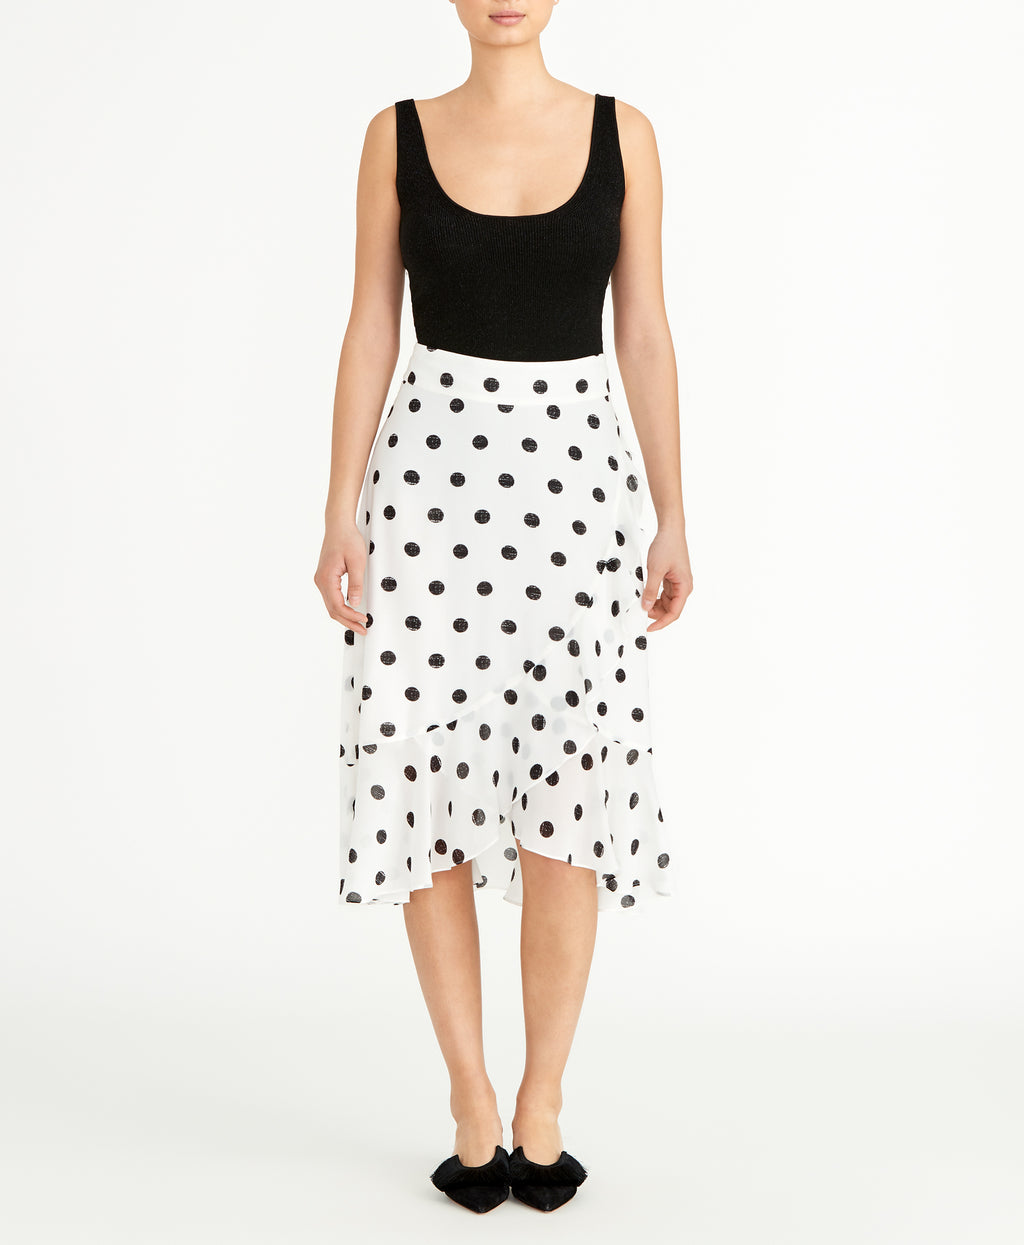 Polka Dot Ruffle Skirt | Polka Dot Ruffle Skirt